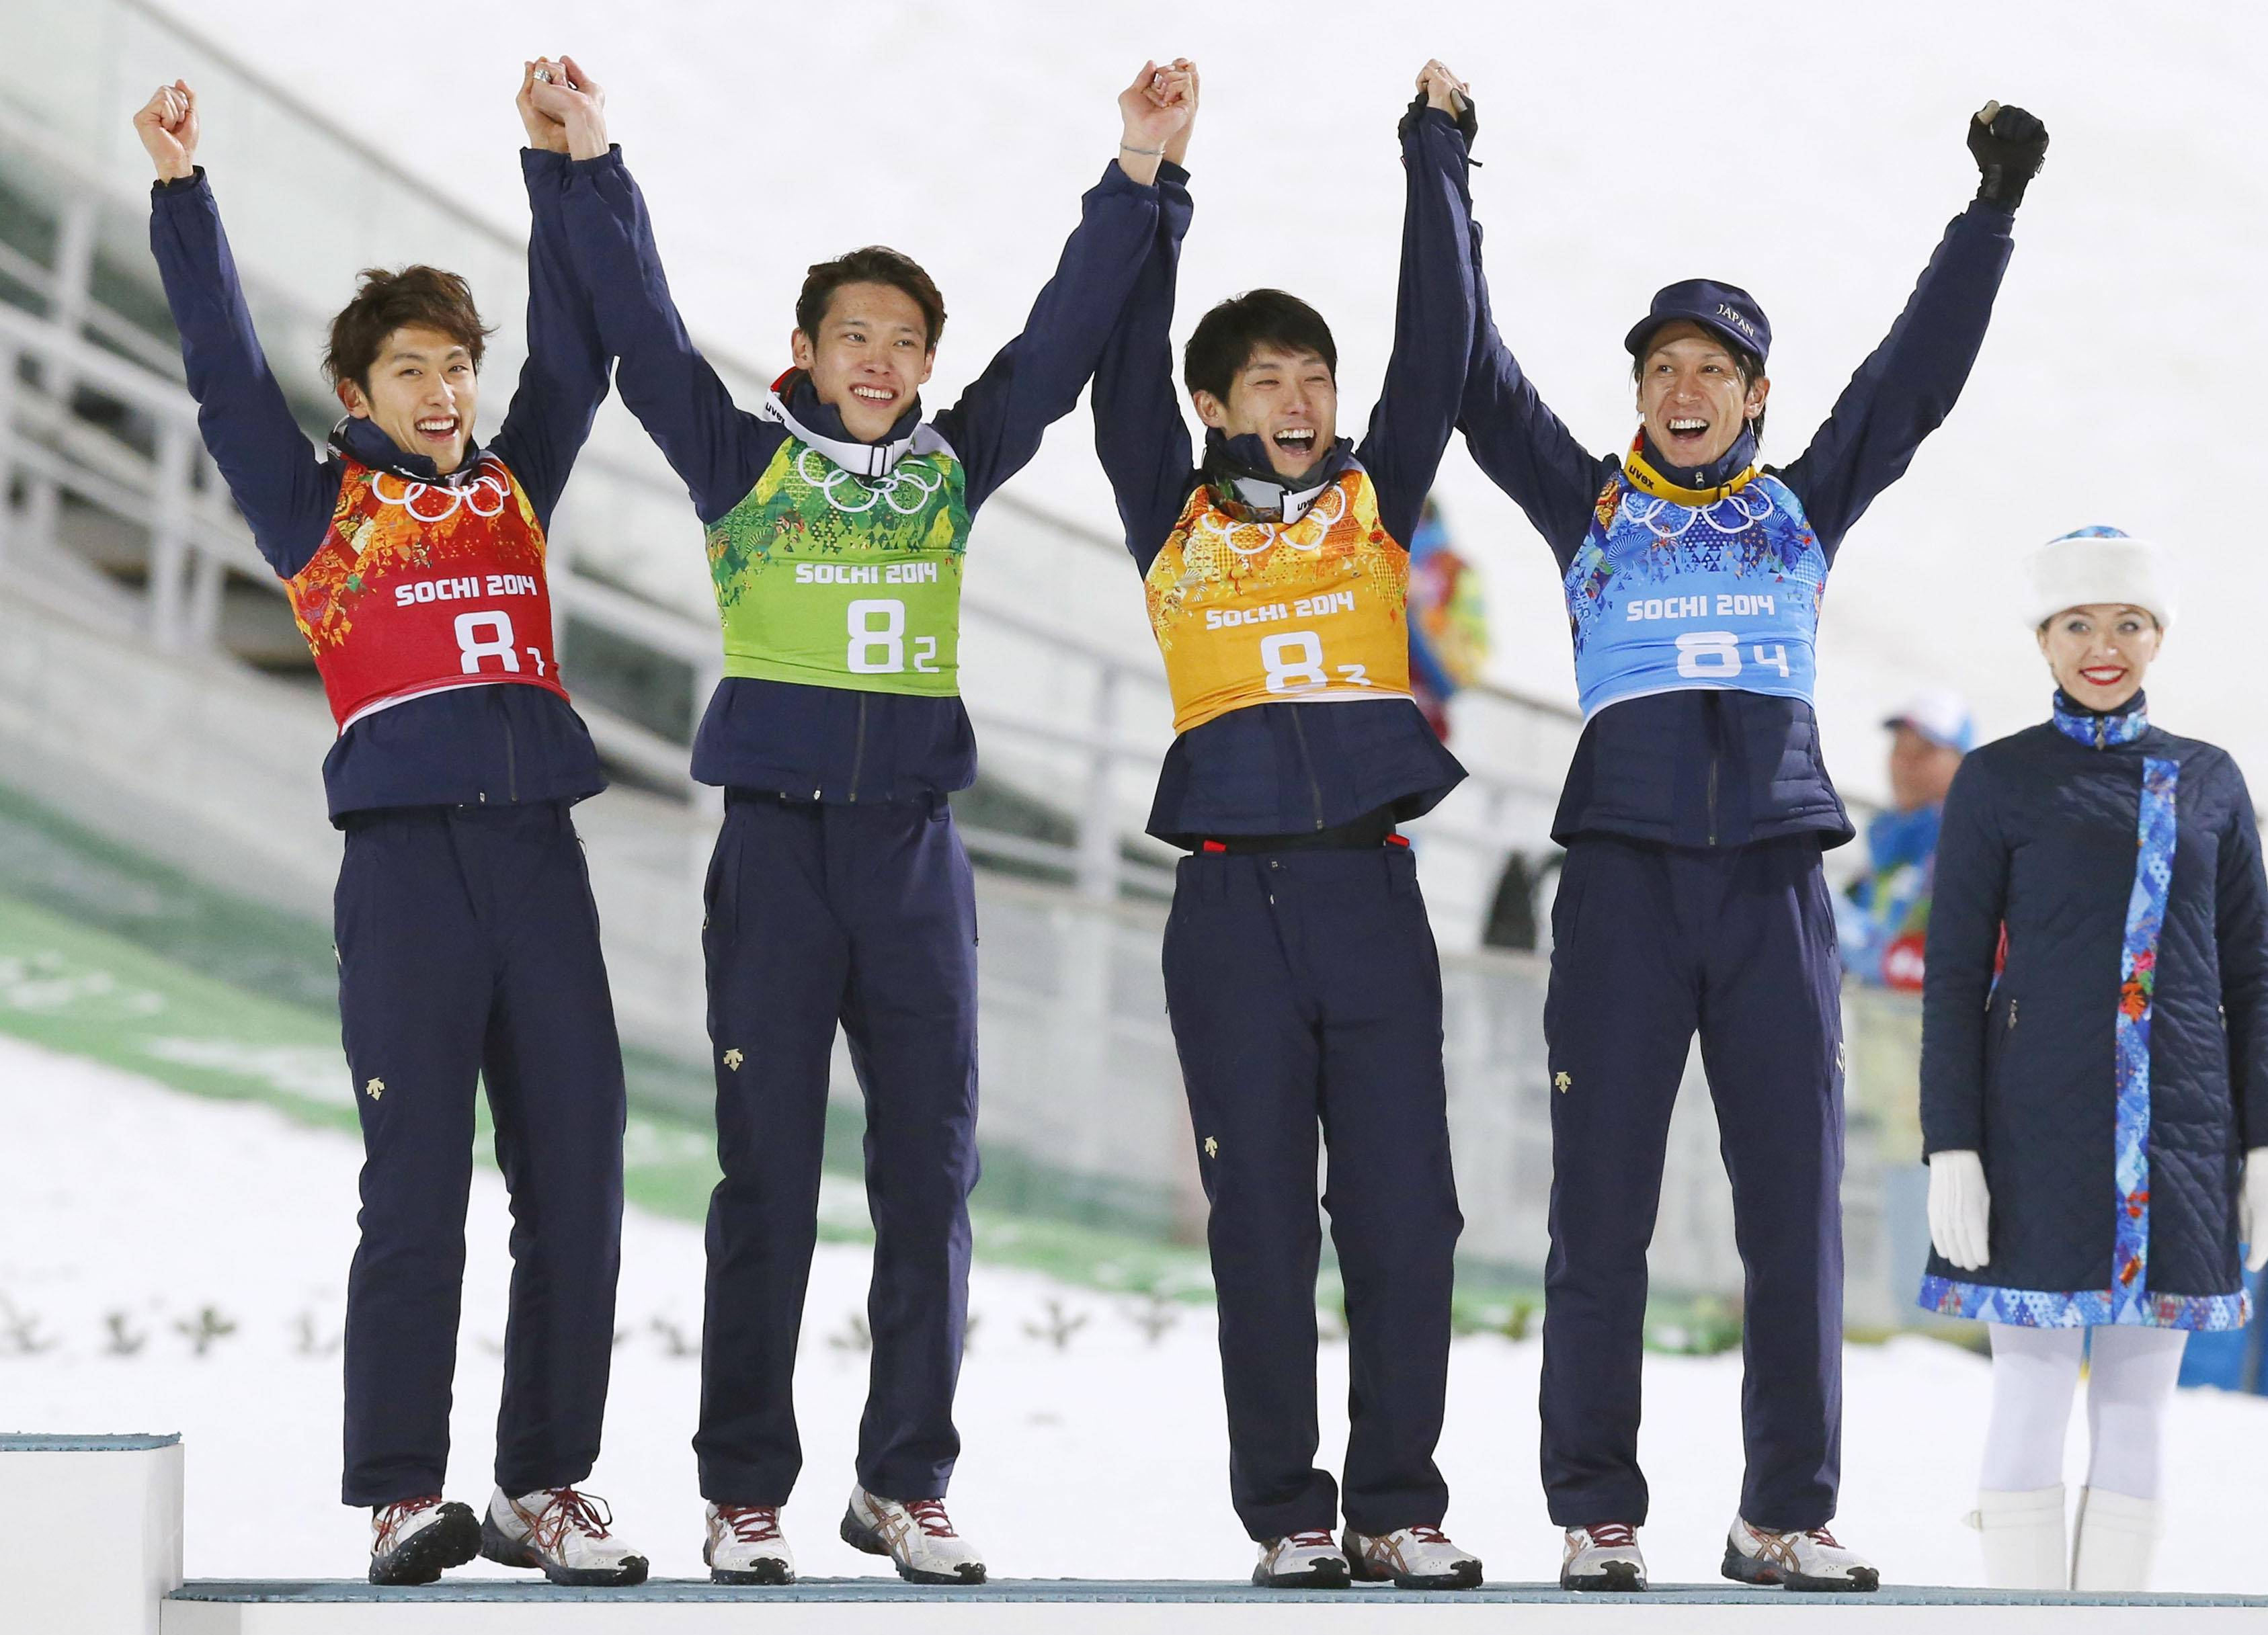 Japanese jumpers (from left) Reruhi Shimizu, Taku Takeuchi, Daiki Ito, Noriaki Kasai celebrate after earning the bronze in the ski jumping large hill team event at the 2014 Winter Olympics on Monday in Krasnaya Polyana, Russia.  | KYODO